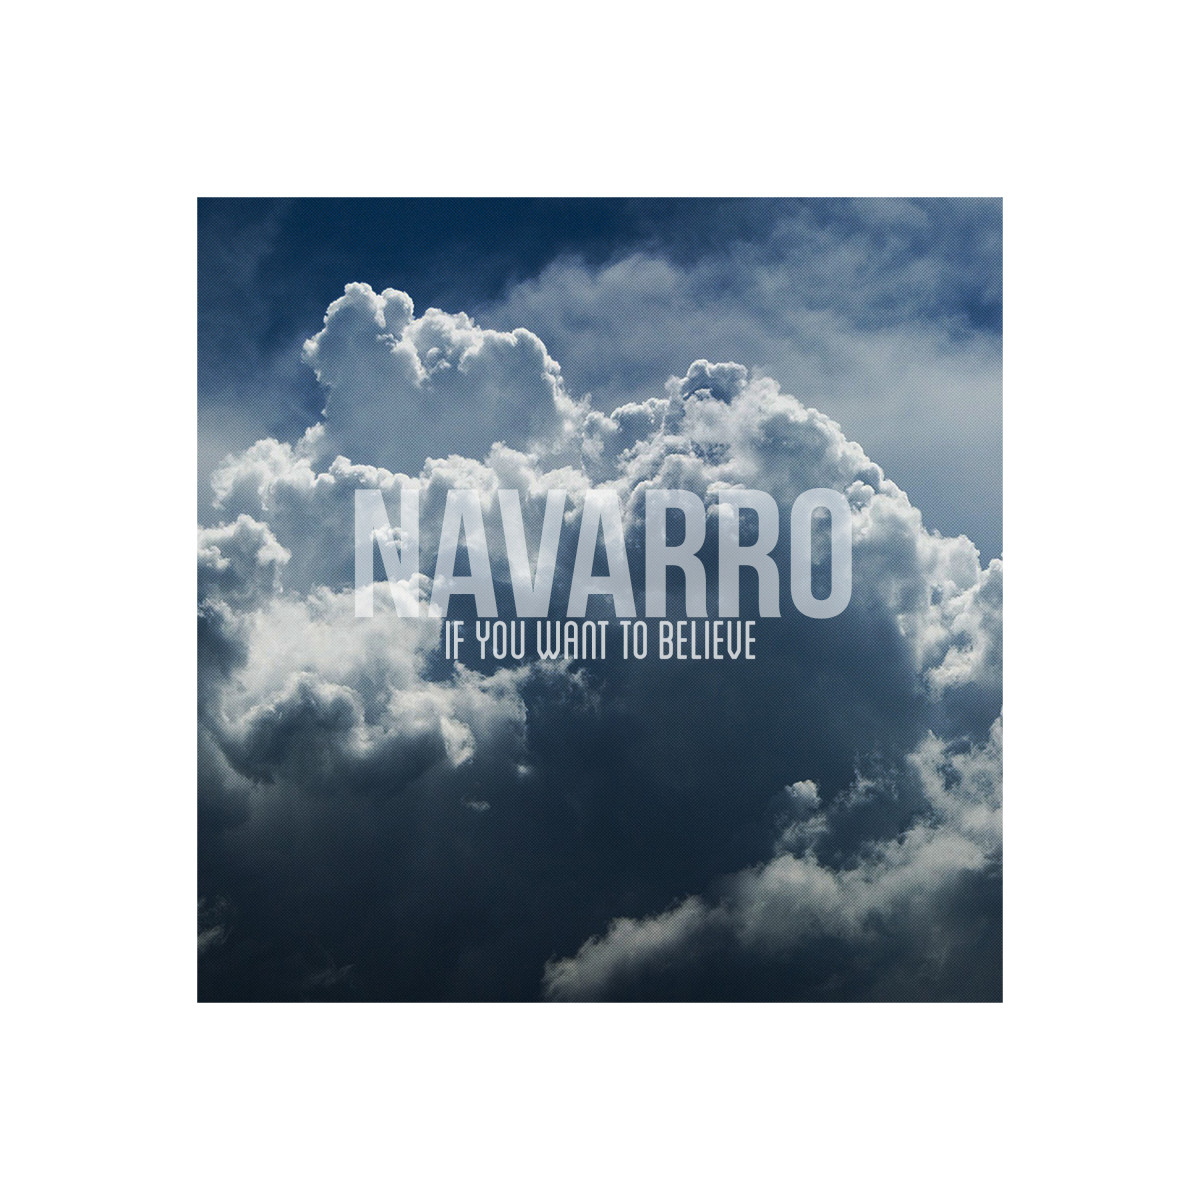 Navarro - If You Want to Believe Artwork